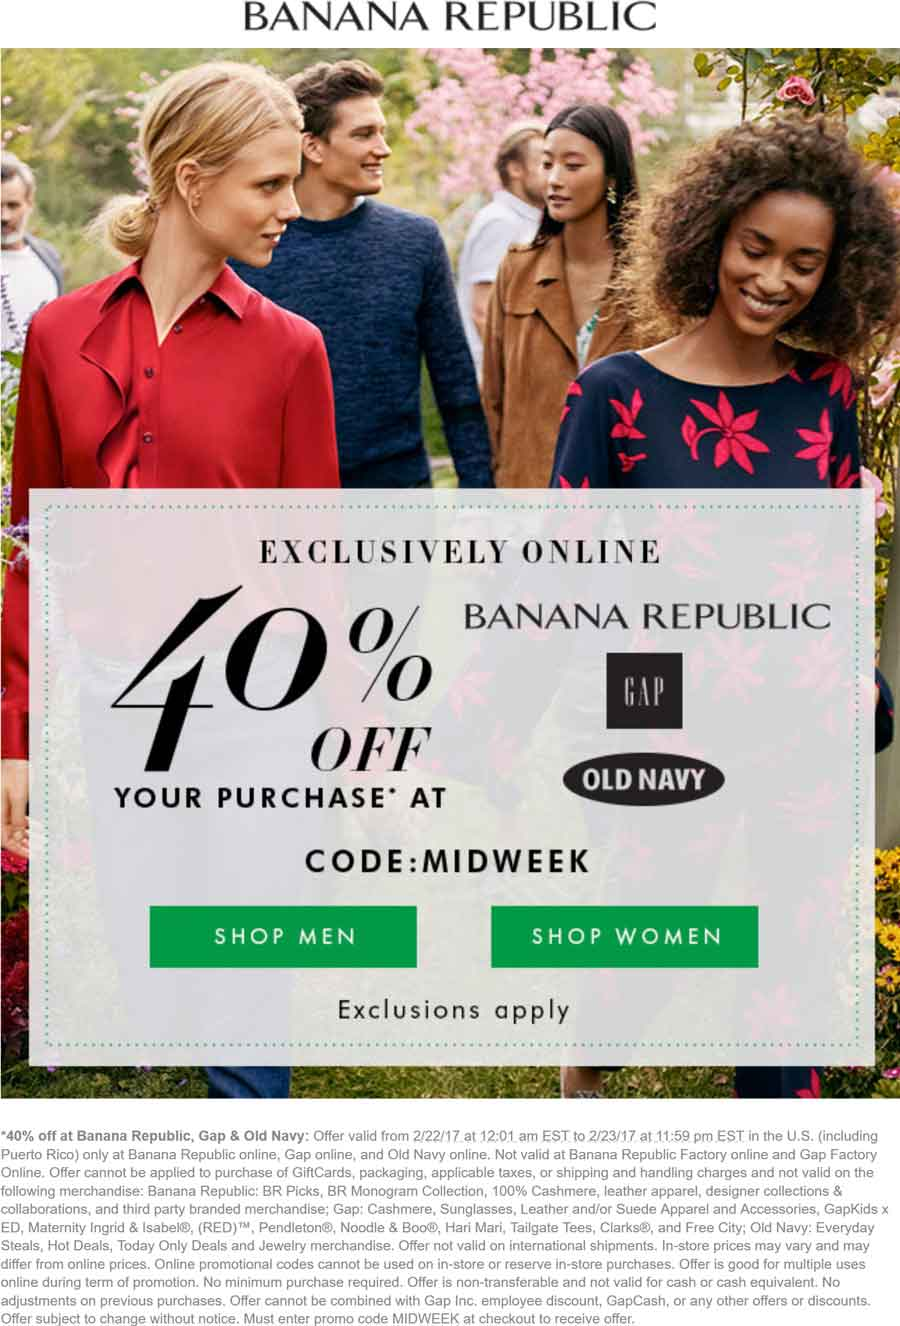 Old Navy Coupon August 2018 40% off online at Gap, Old Navy & Banana Republic via promo code MIDWEEK